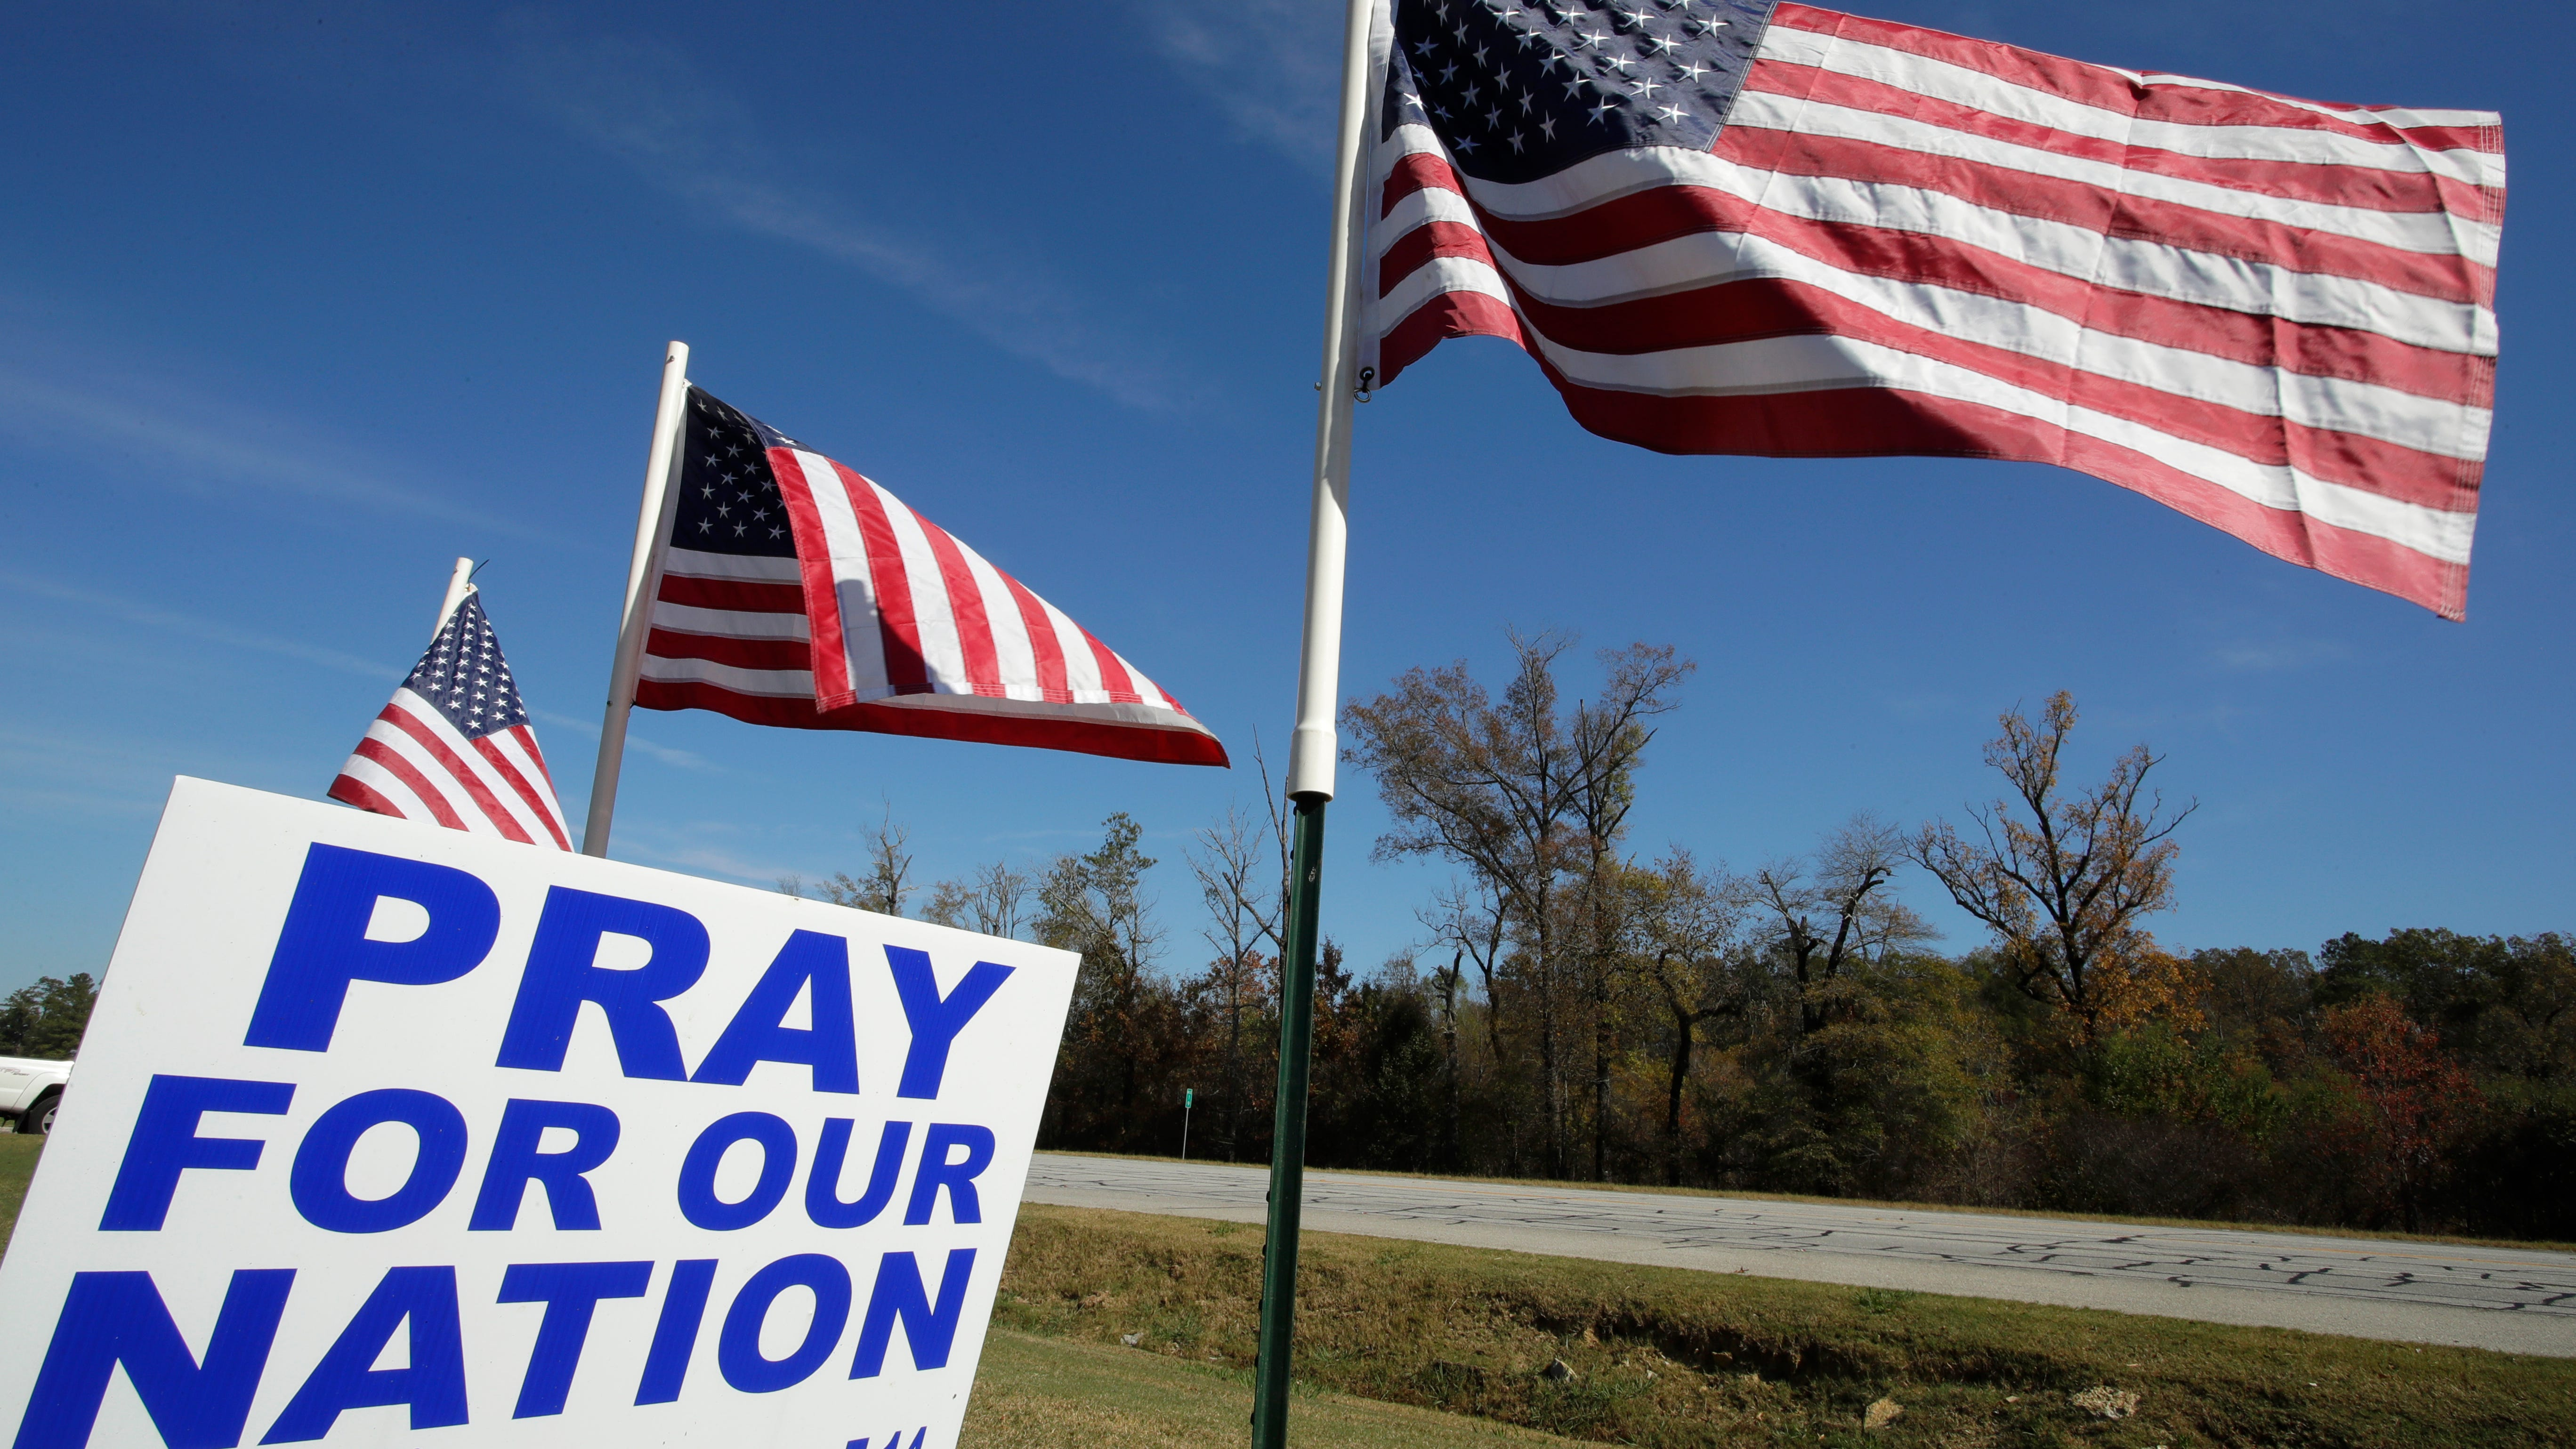 American flags fly over a sign reading 'Pray For Our Nation' on Highway 27 Friday, Nov. 6, 2020, in Rome, Ga. (AP Photo/Ben Margot)